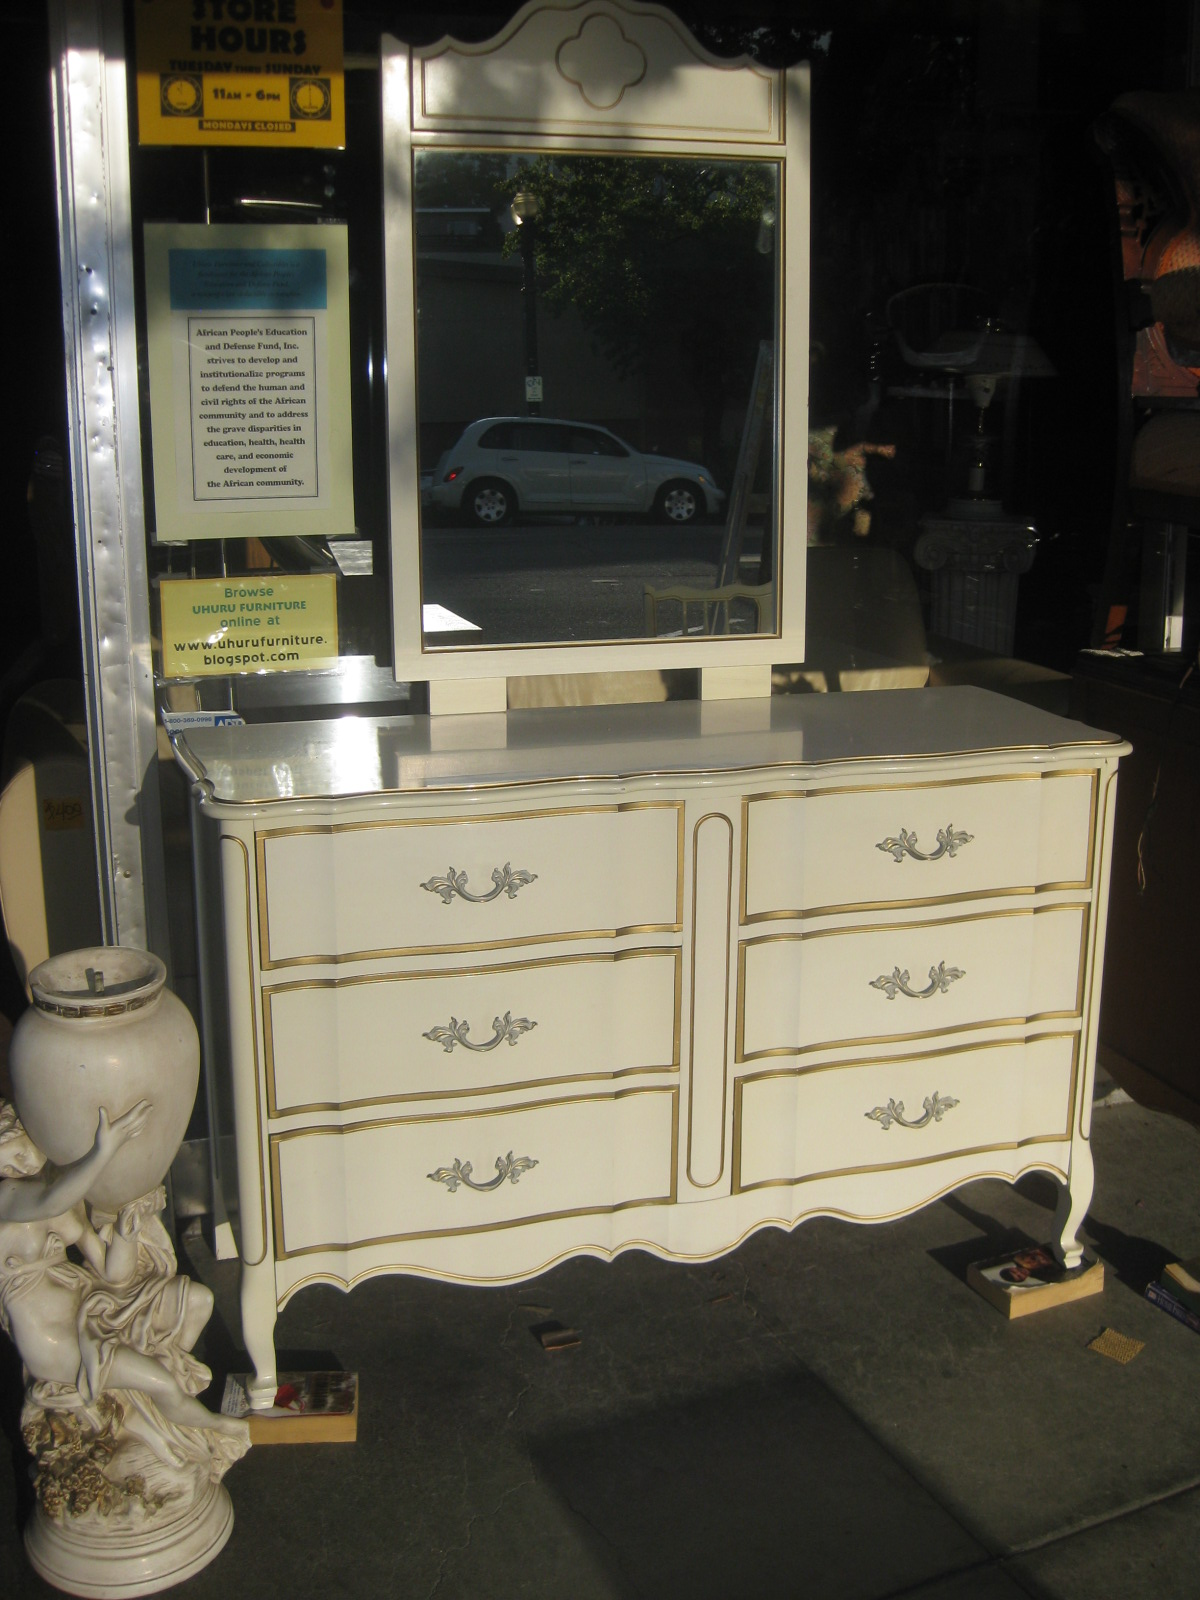 Uhuru furniture collectibles sold french provincial - French style bedroom furniture sets ...